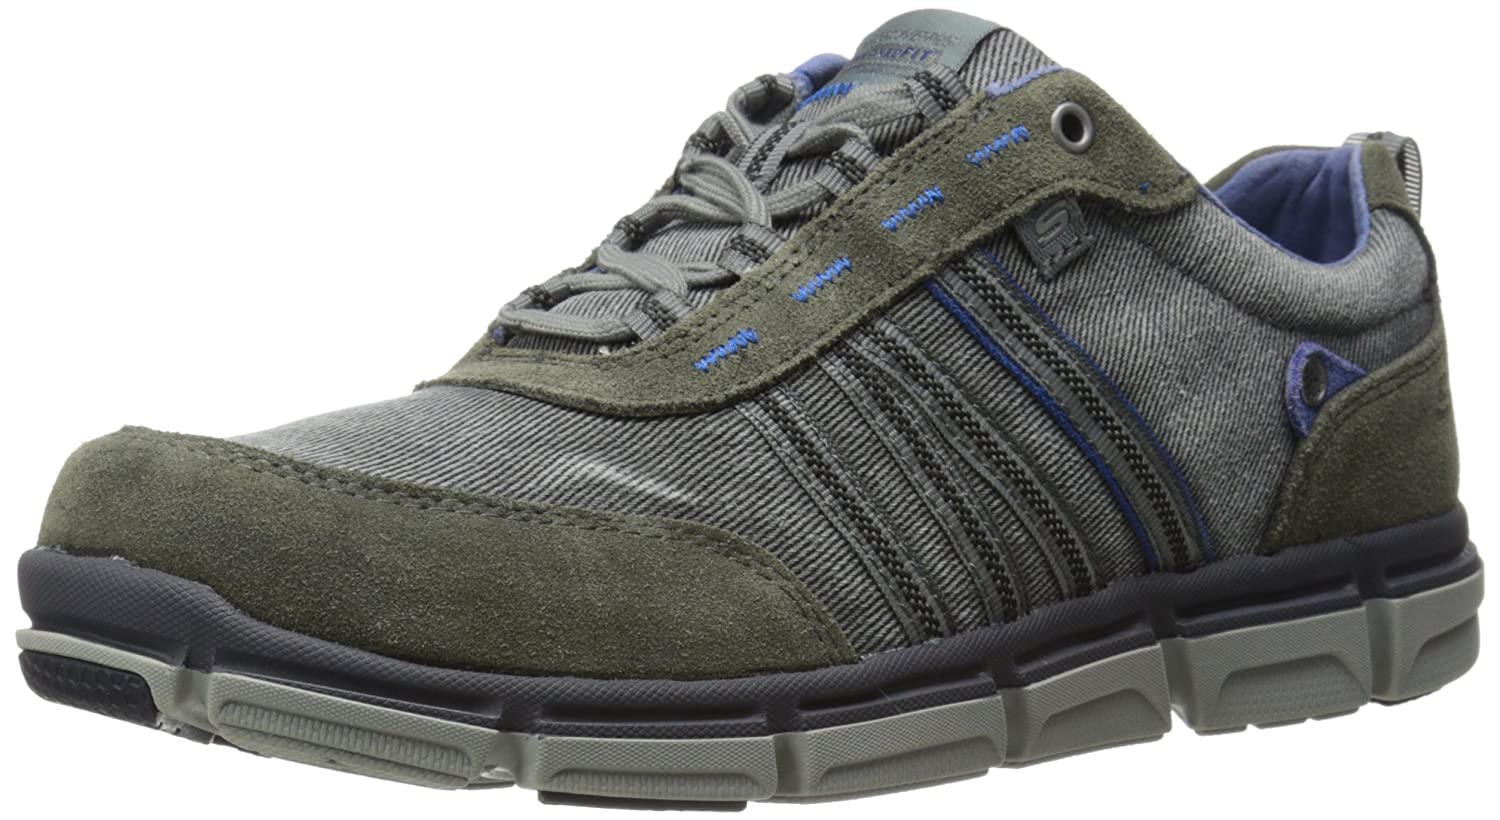 8f1565571d65 85%OFF Skechers USA Men's Broger Kenster Lace-Up Sneaker ...